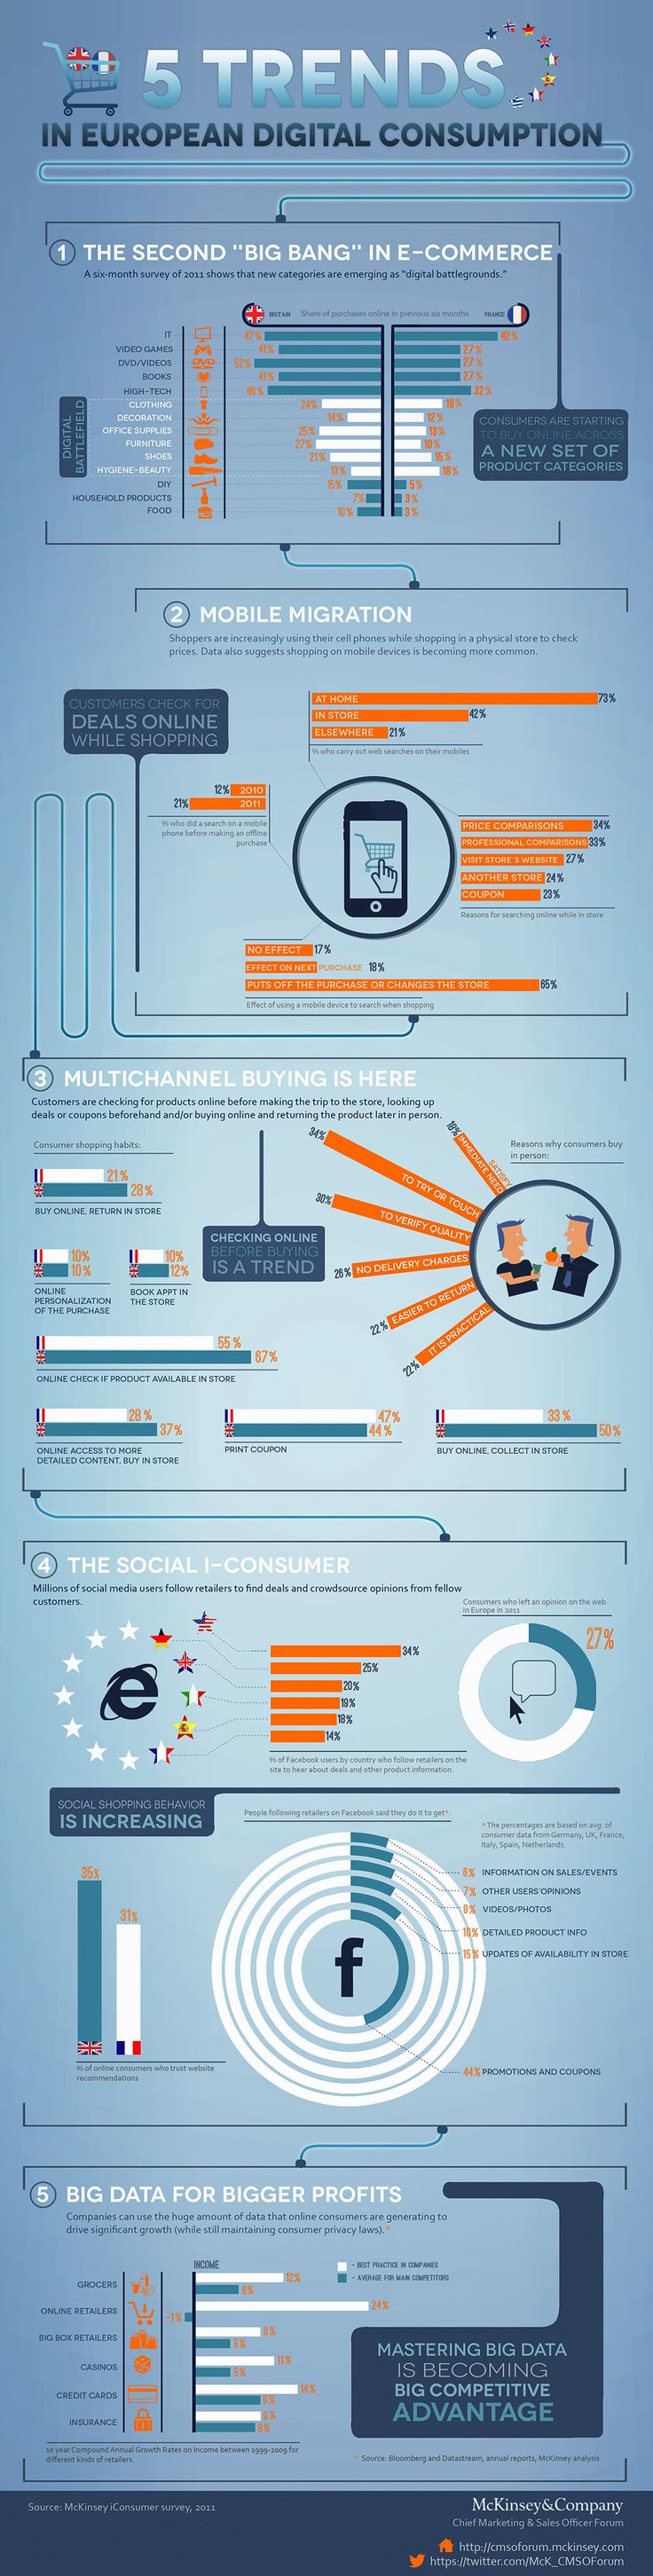 5 Trends in European Digital Consumption